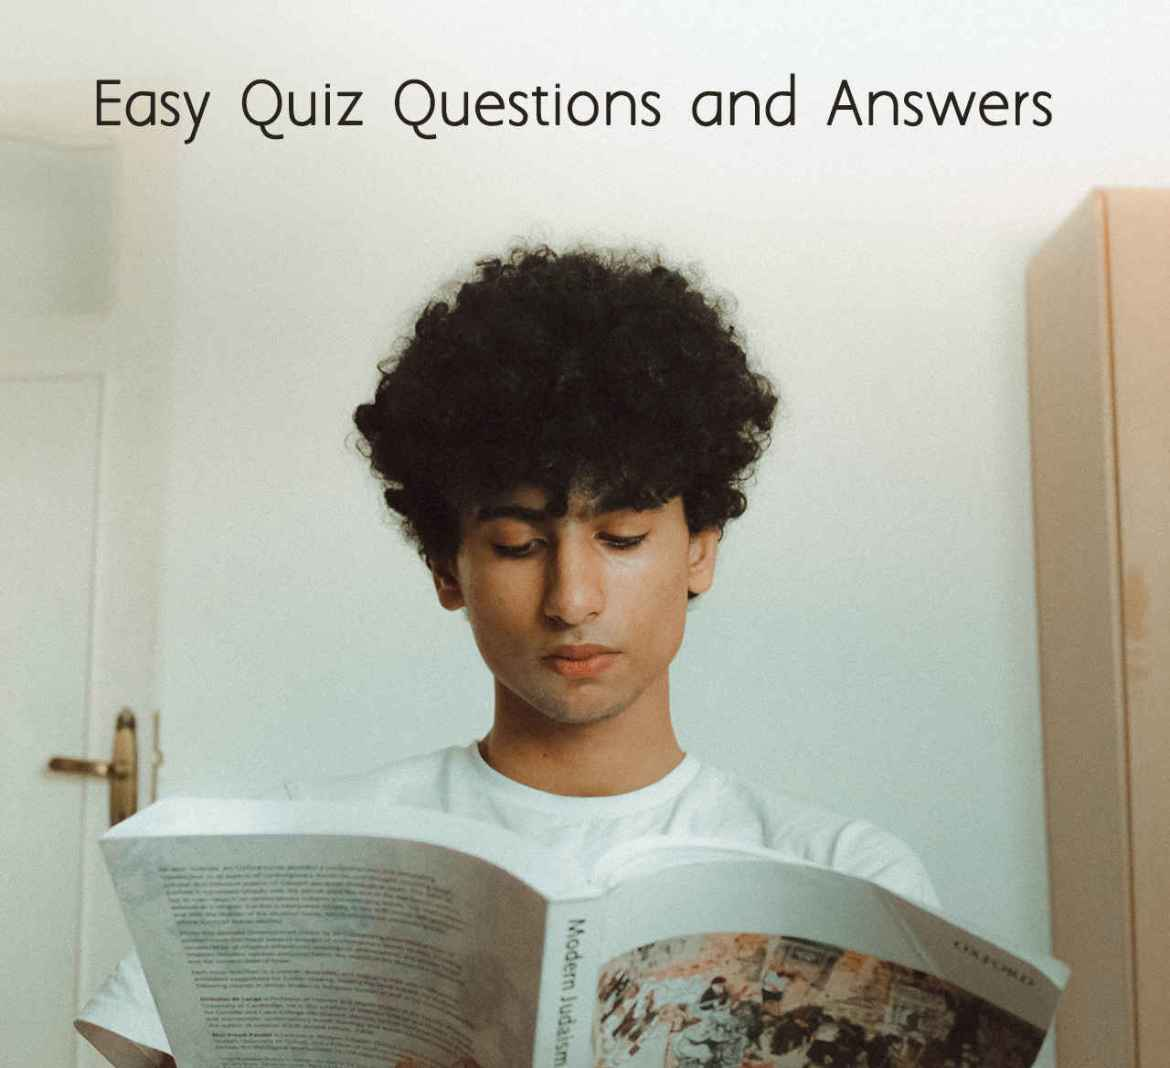 Easy Quiz Questions and Answers